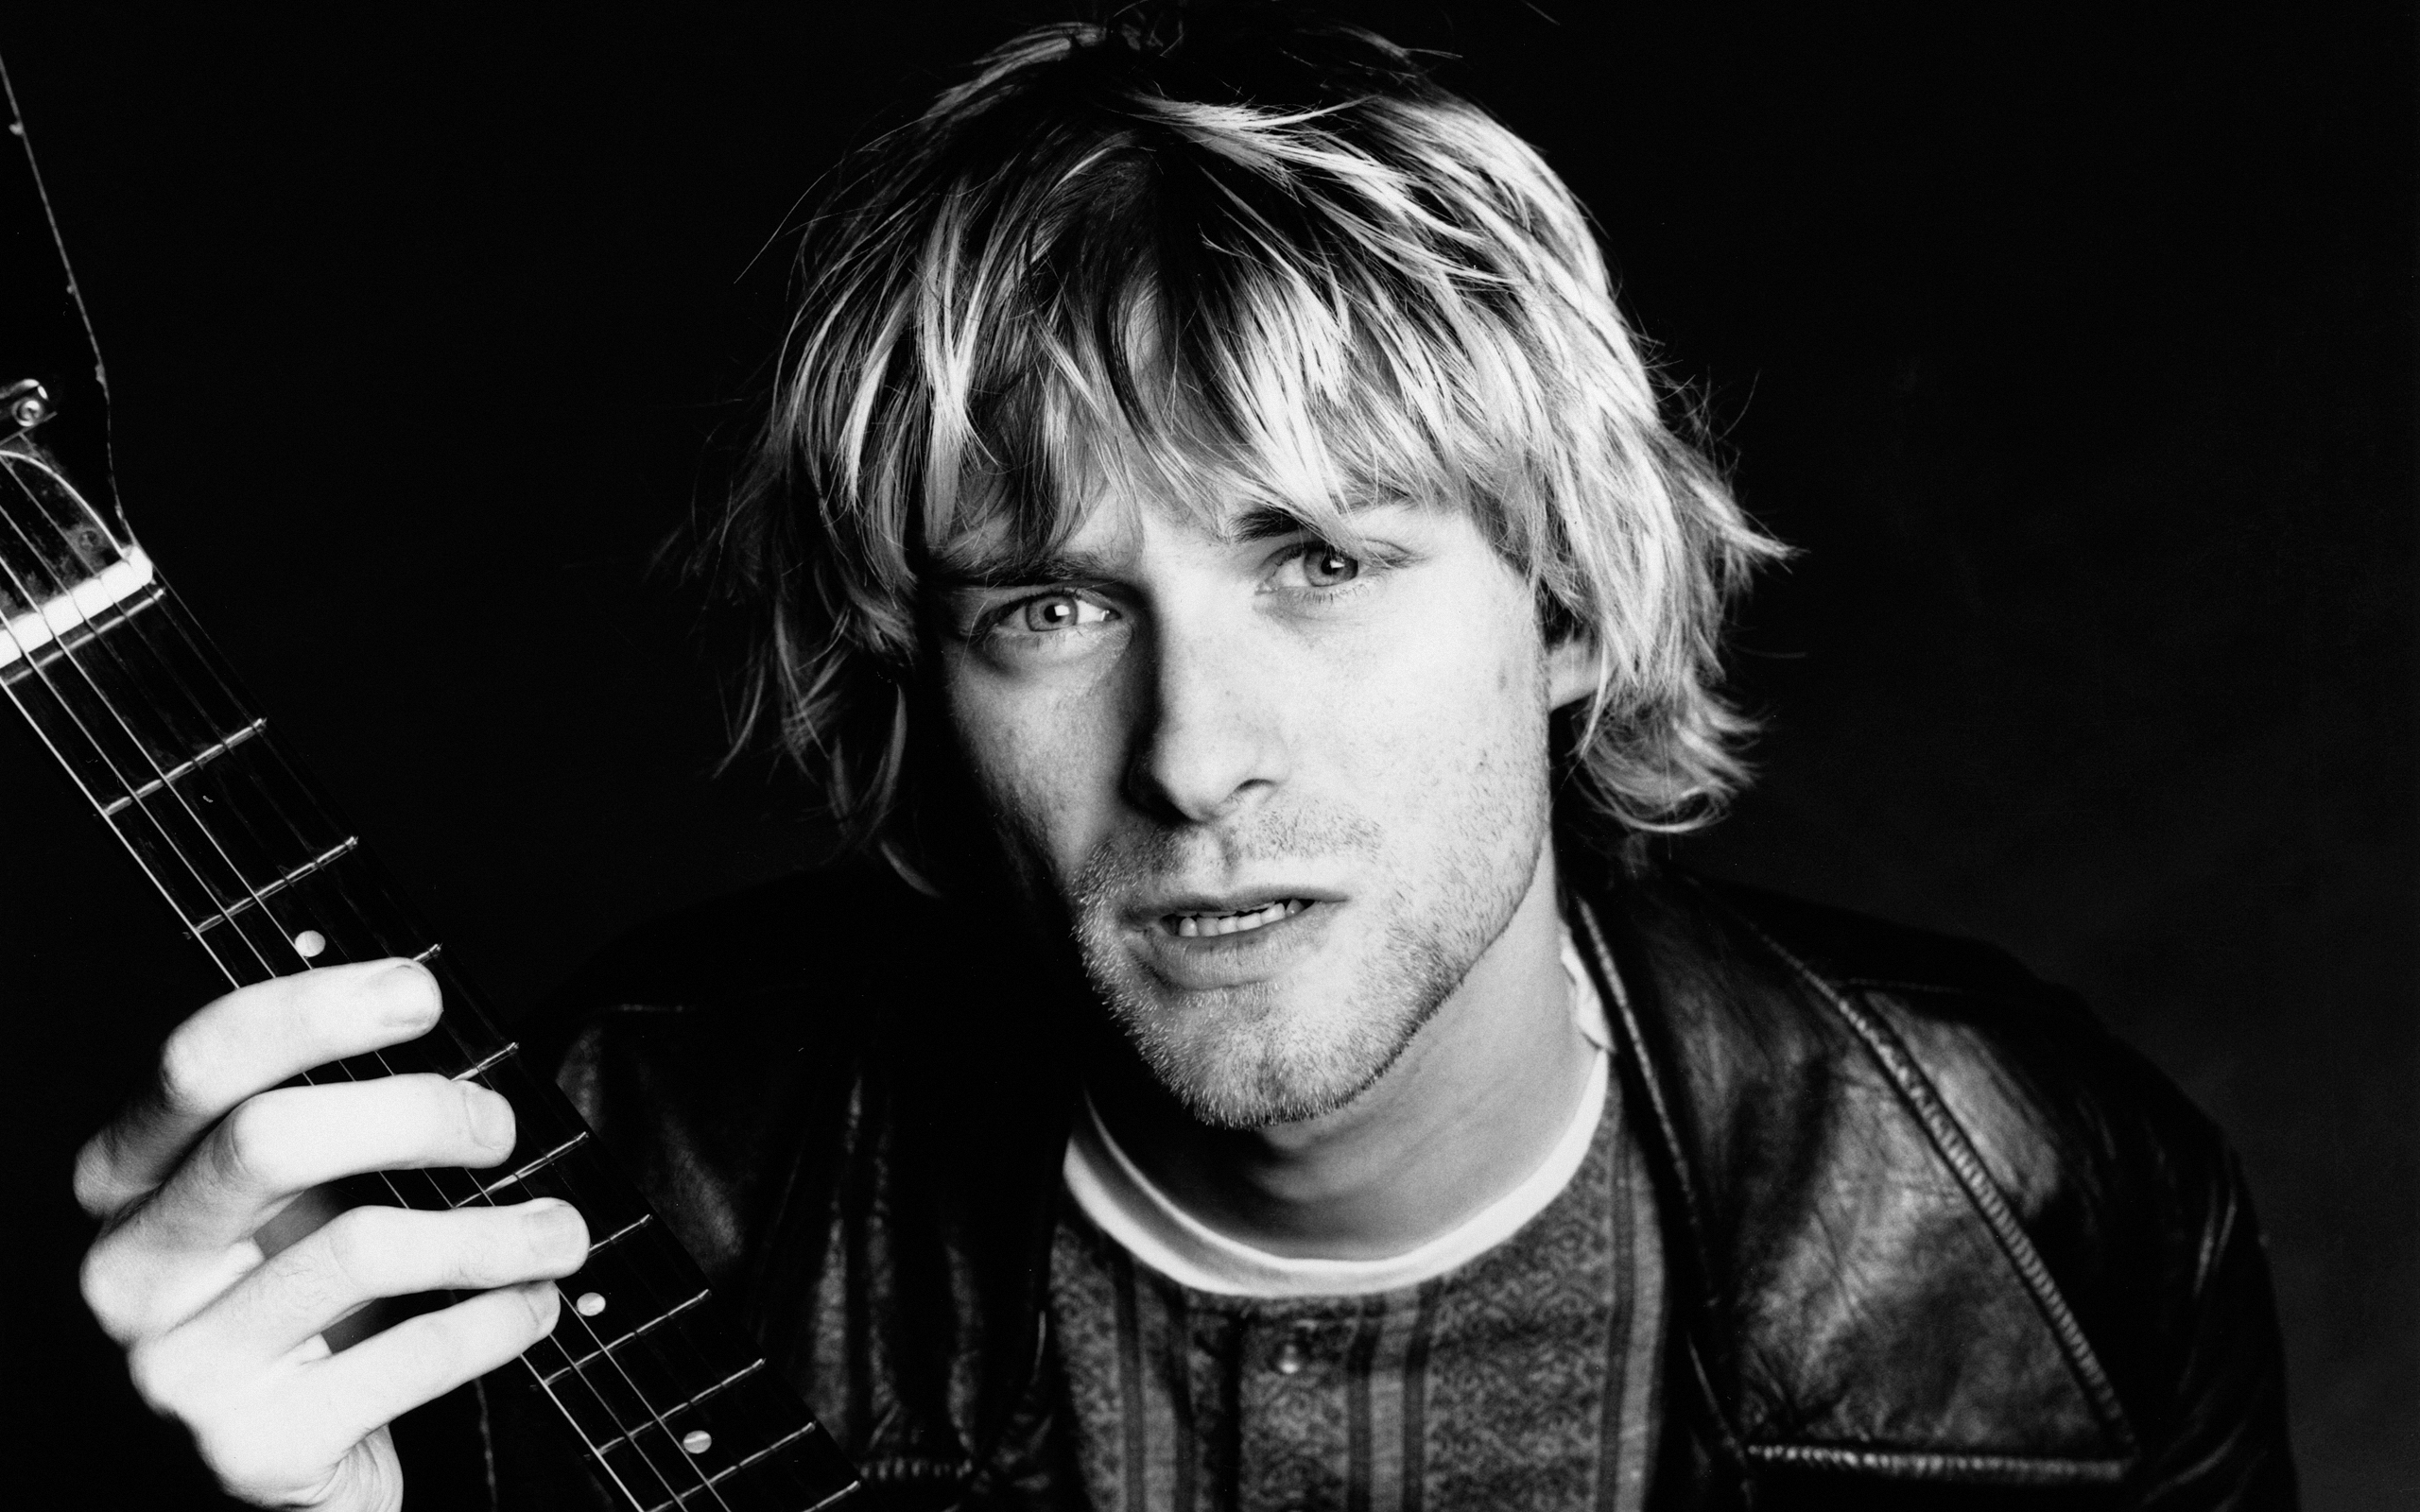 Kurt Cobain Backgrounds, Compatible - PC, Mobile, Gadgets| 2560x1600 px